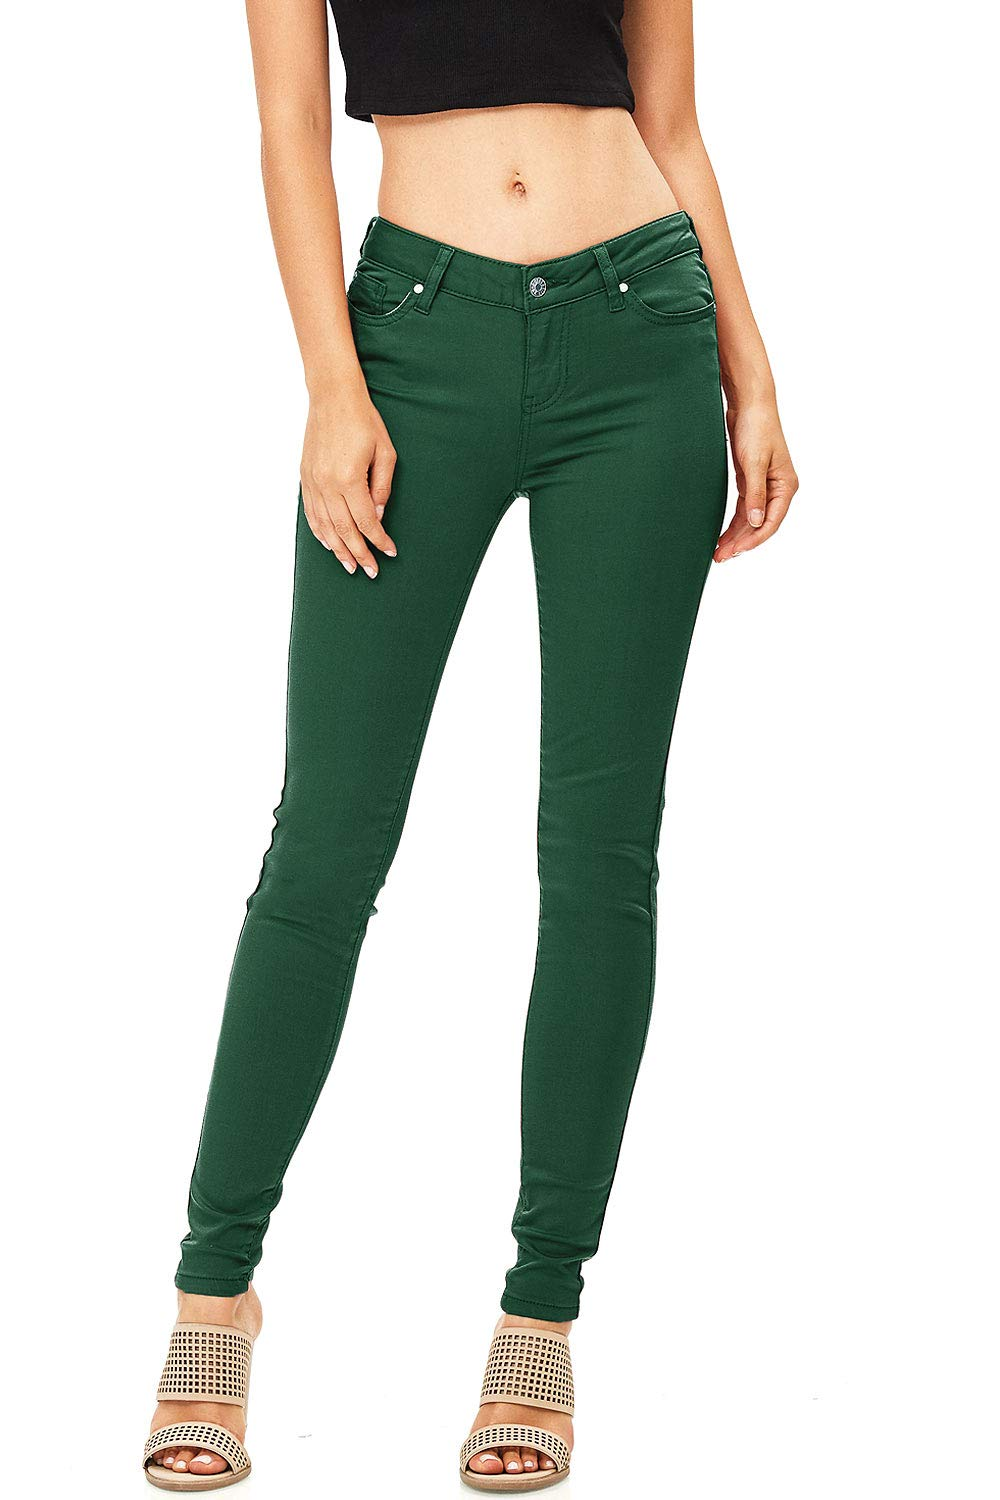 Celebrity Pink Women's Juniors Mid-Rise Jeggings Fit Skinny Pants (13, Forest)